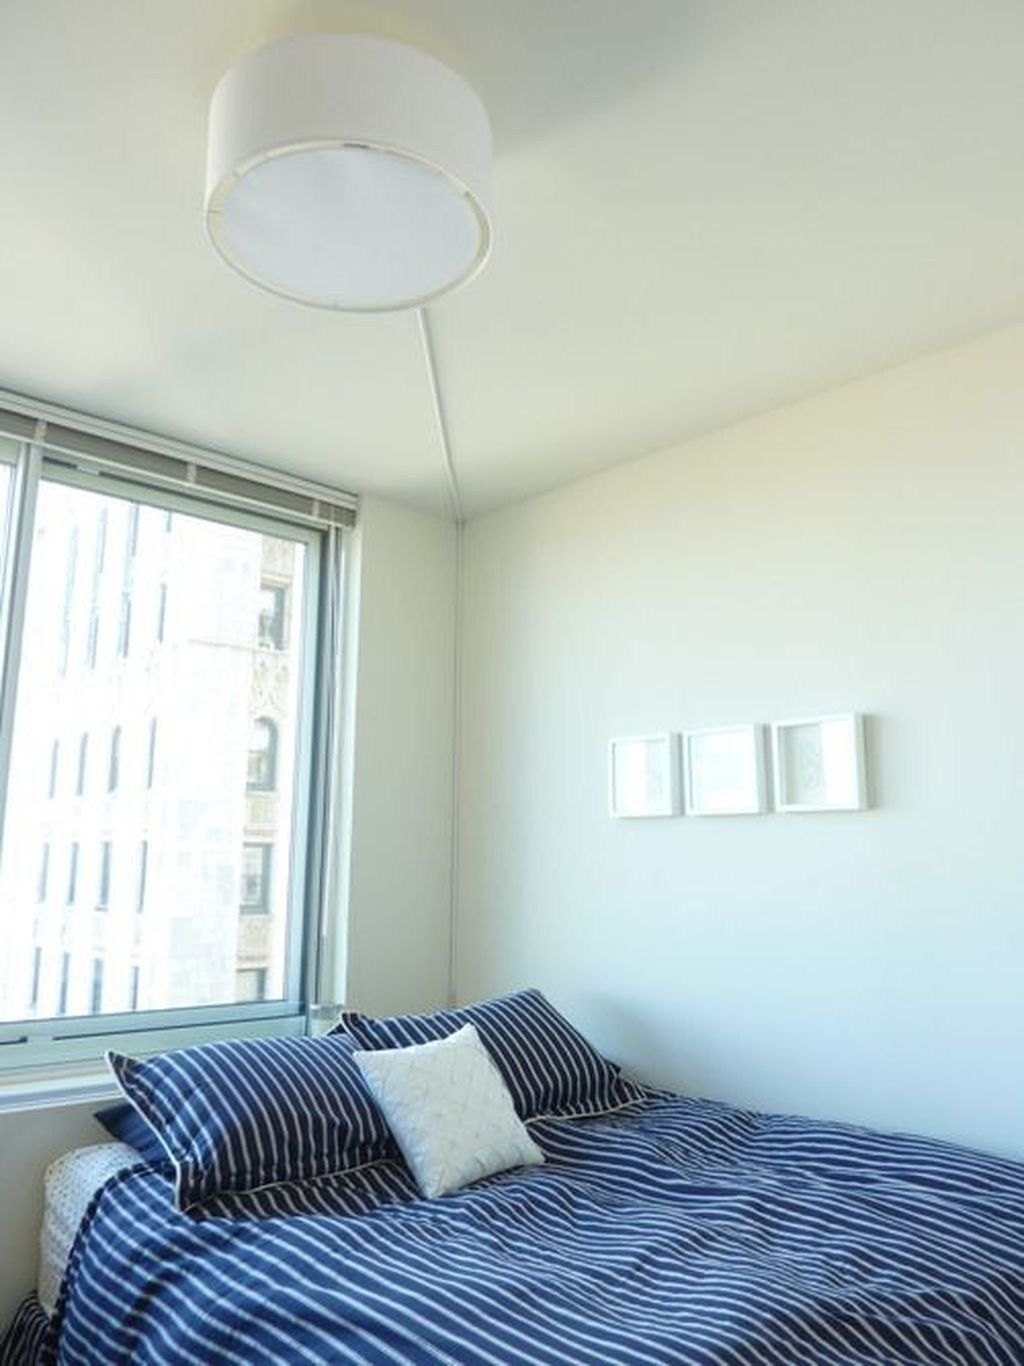 Captivating Diy Lighting Ideas For Small Apartment12 Bed